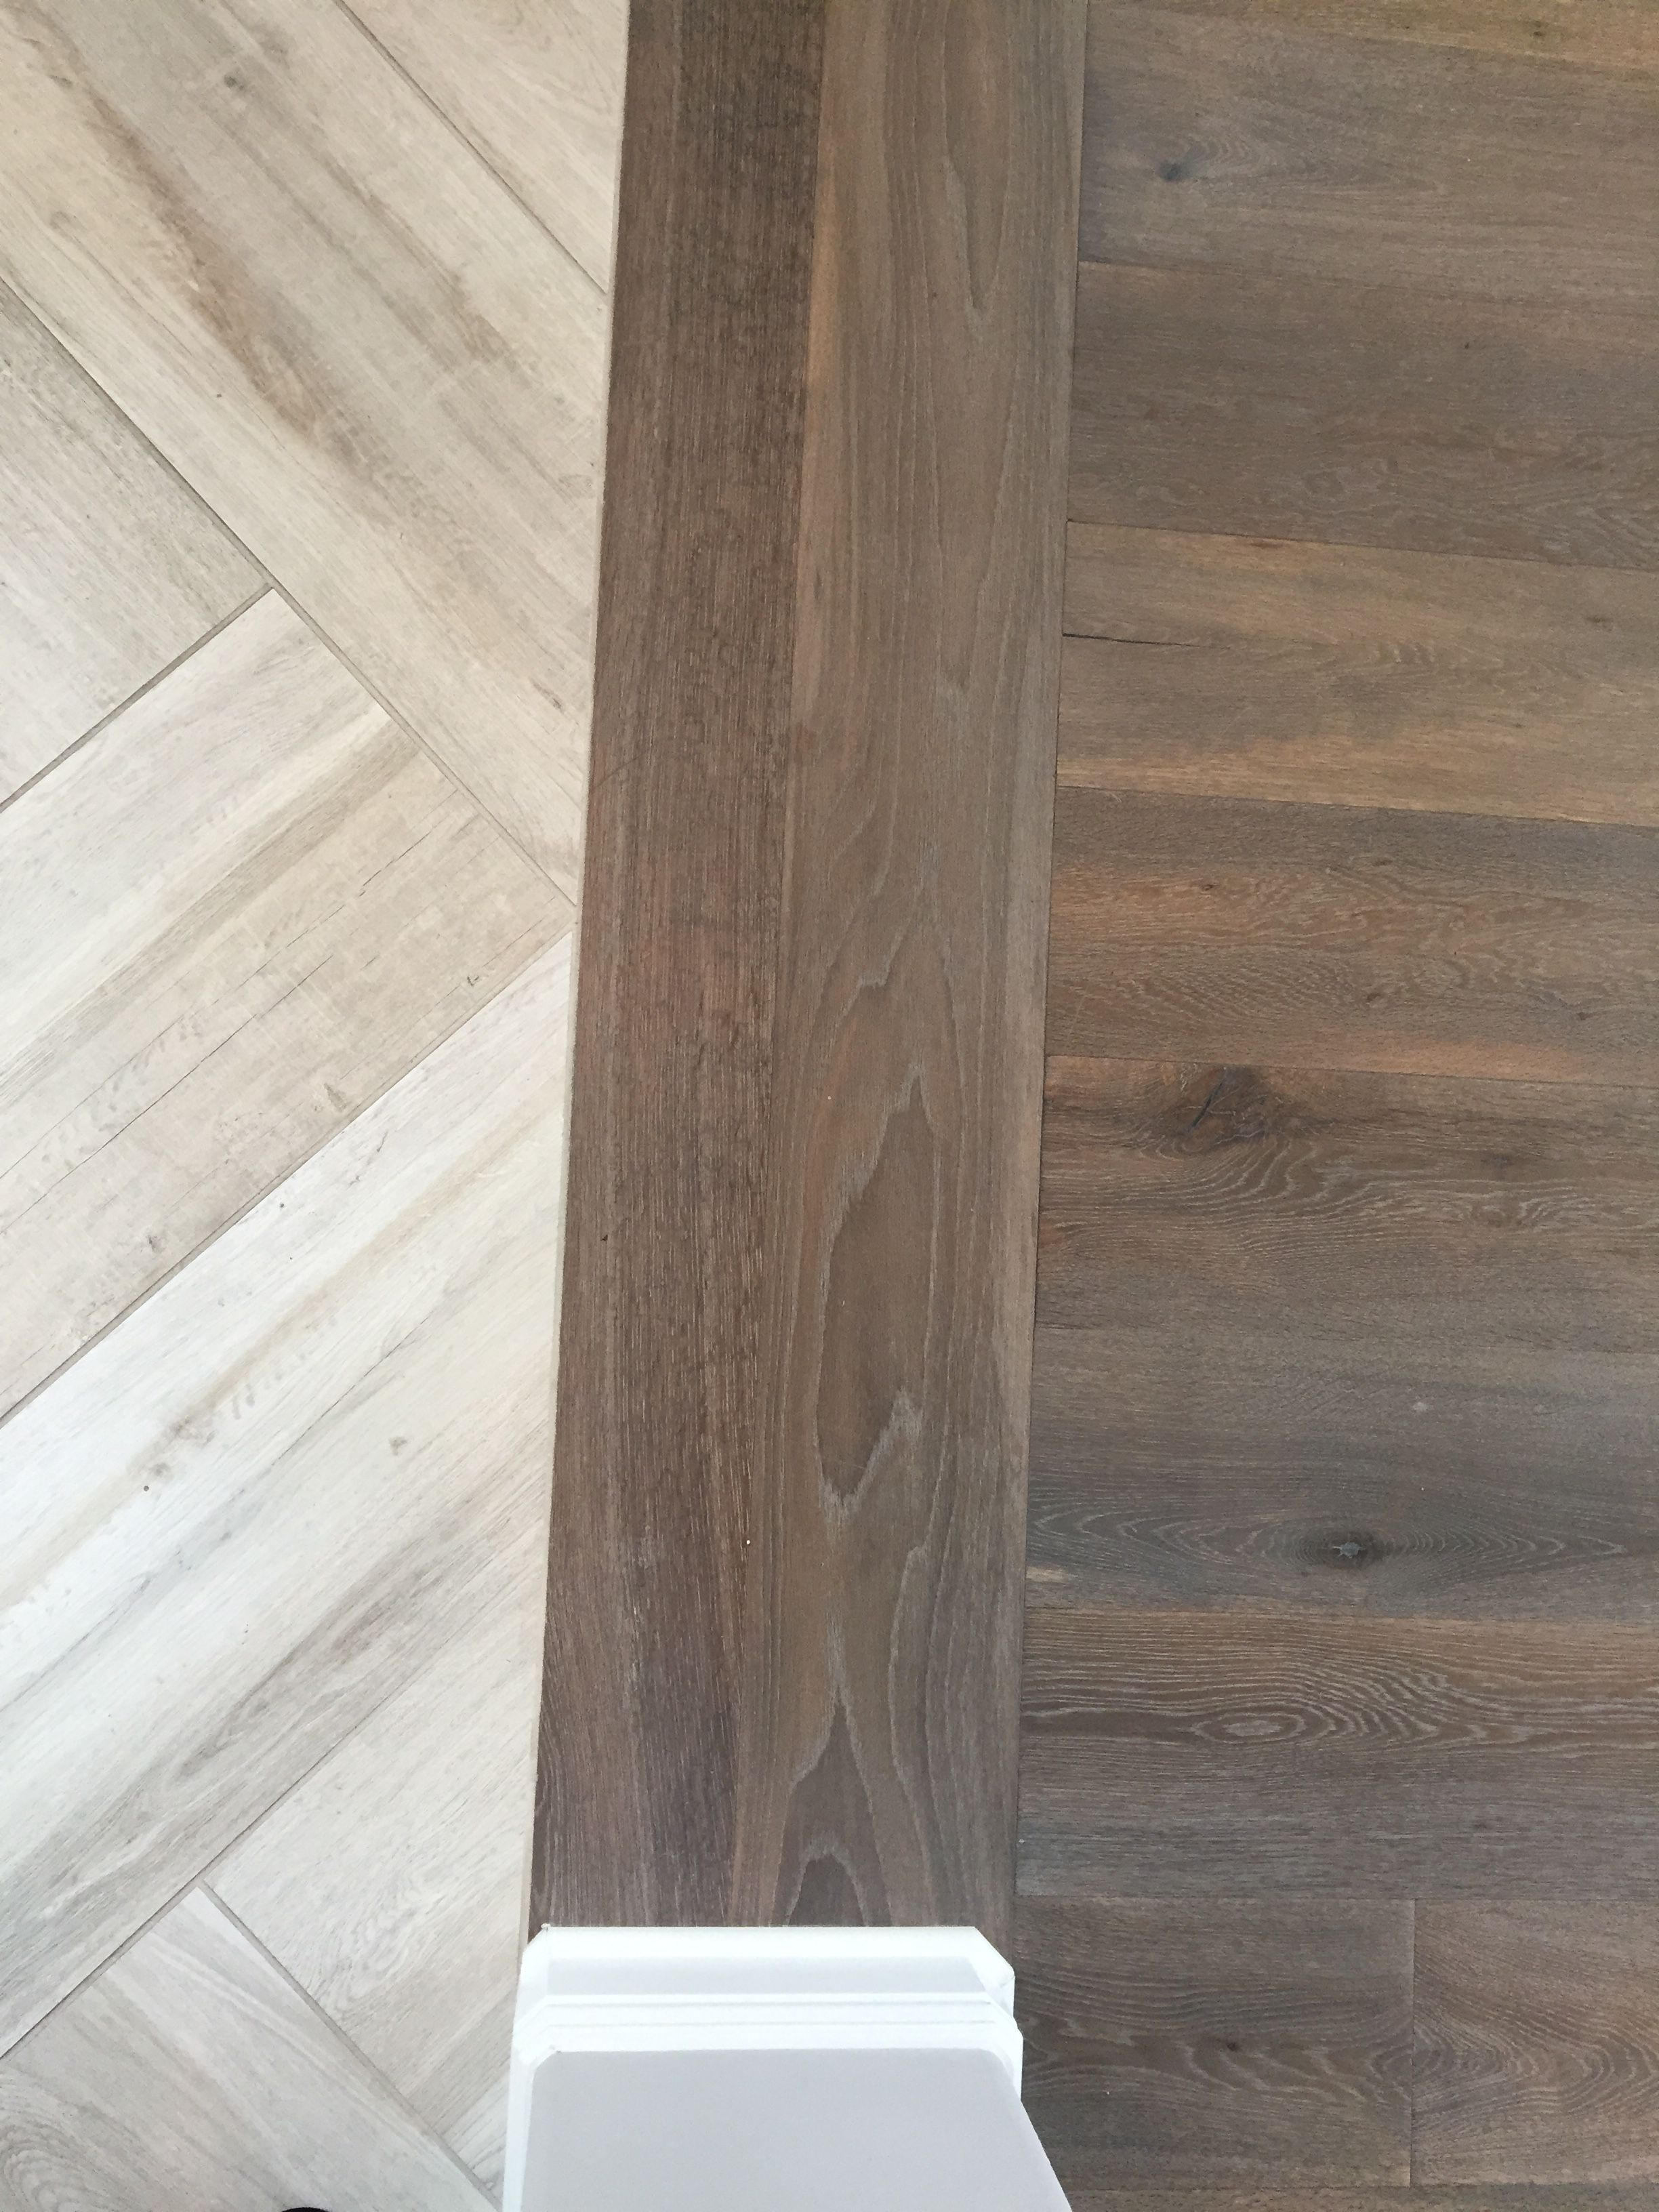 Floor transition laminate to herringbone tile pattern for Hardwood tile flooring